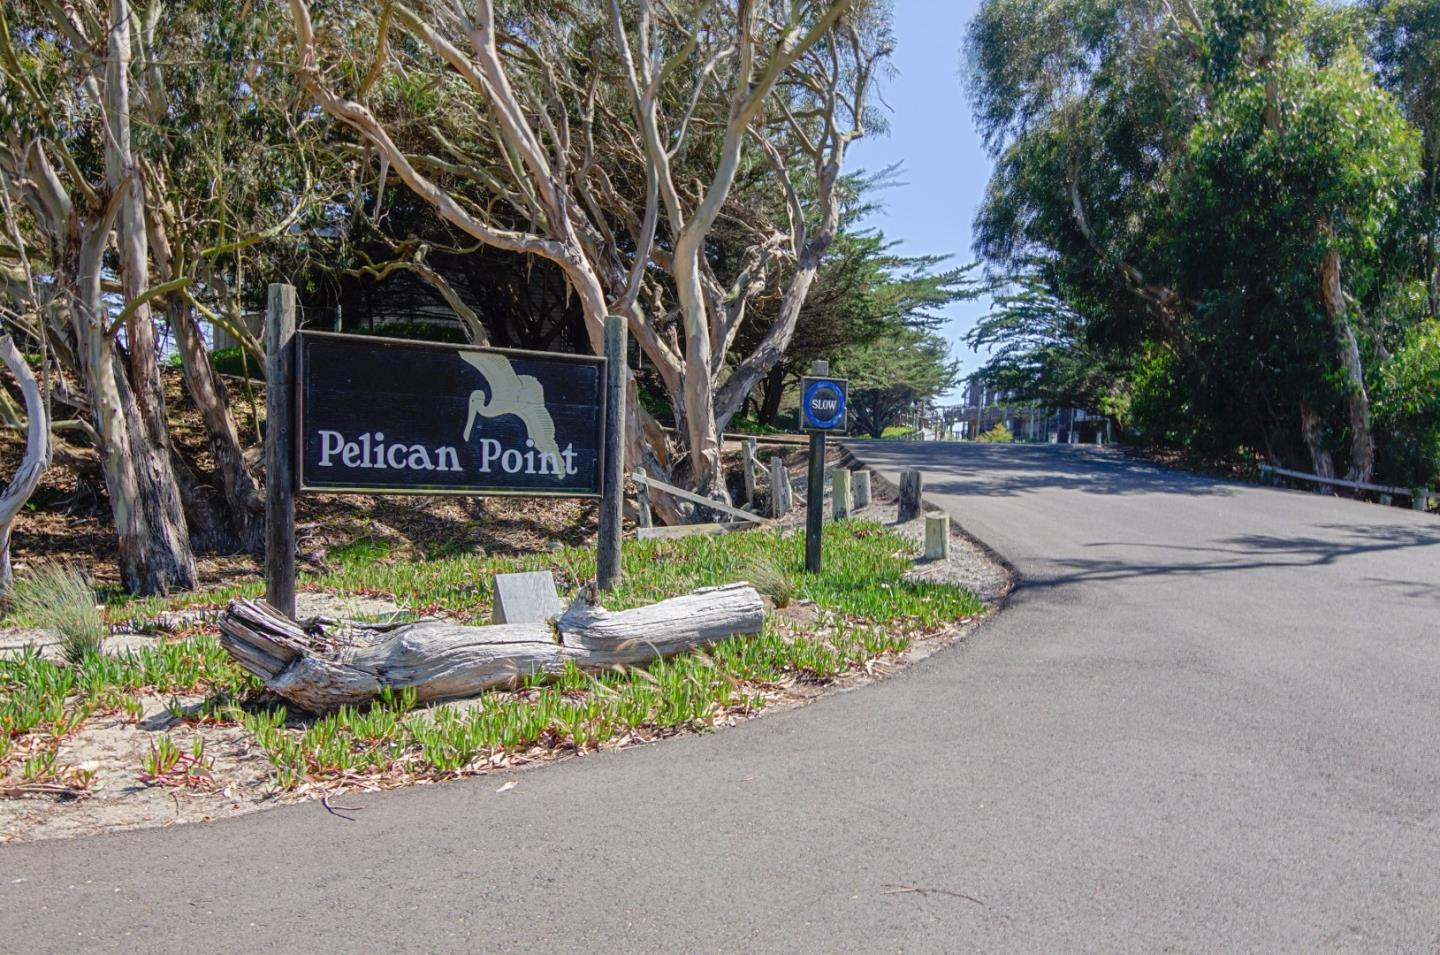 Additional photo for property listing at 72 Pelican Point  Watsonville, カリフォルニア 95076 アメリカ合衆国